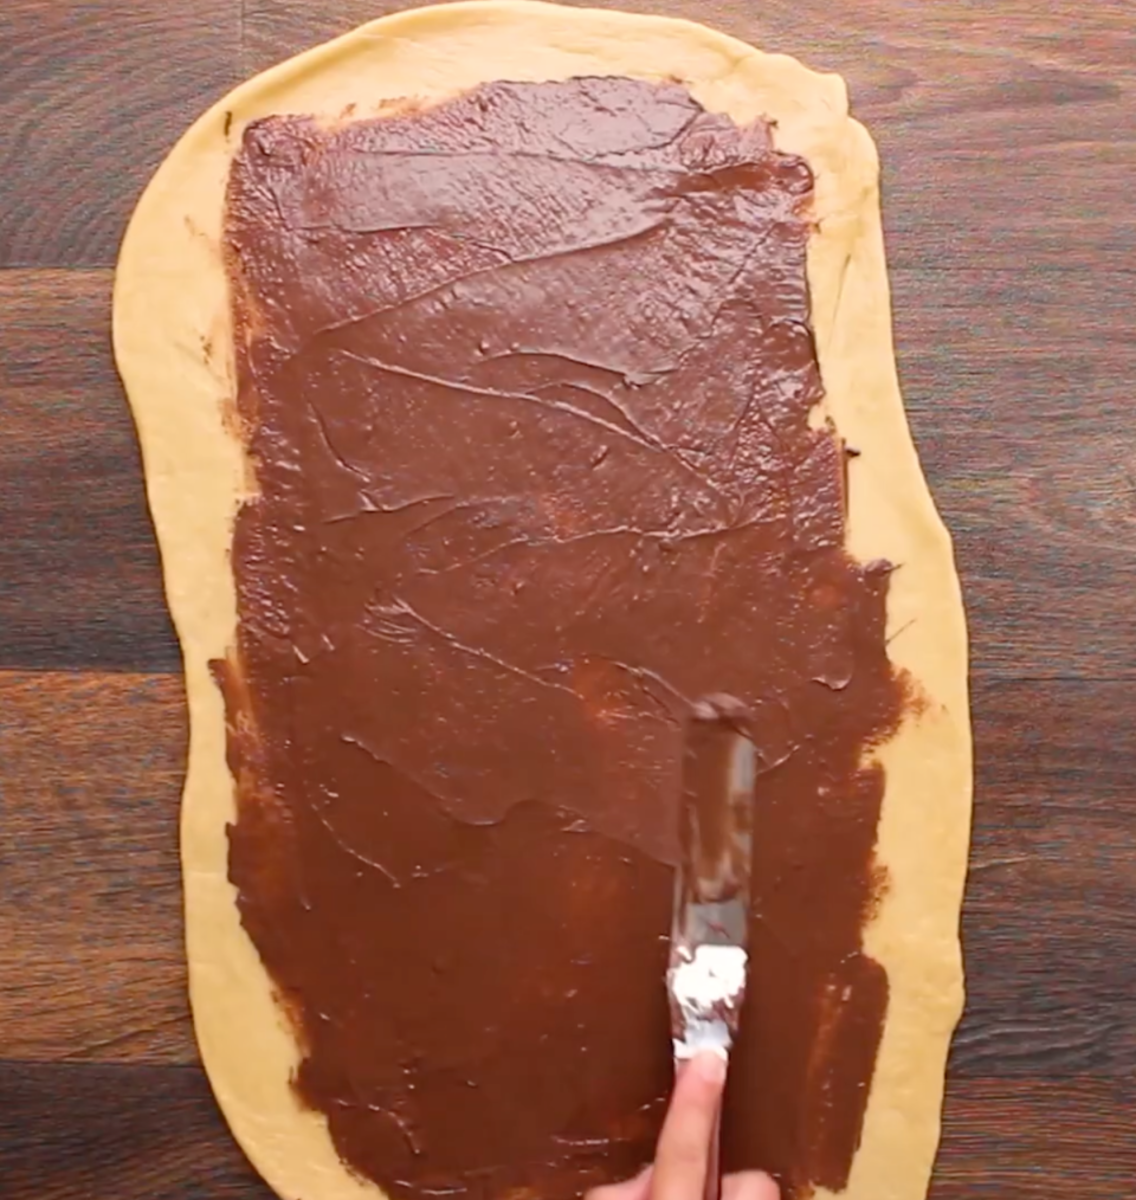 Spreading the first layer of chocolate on the dough rectangle.